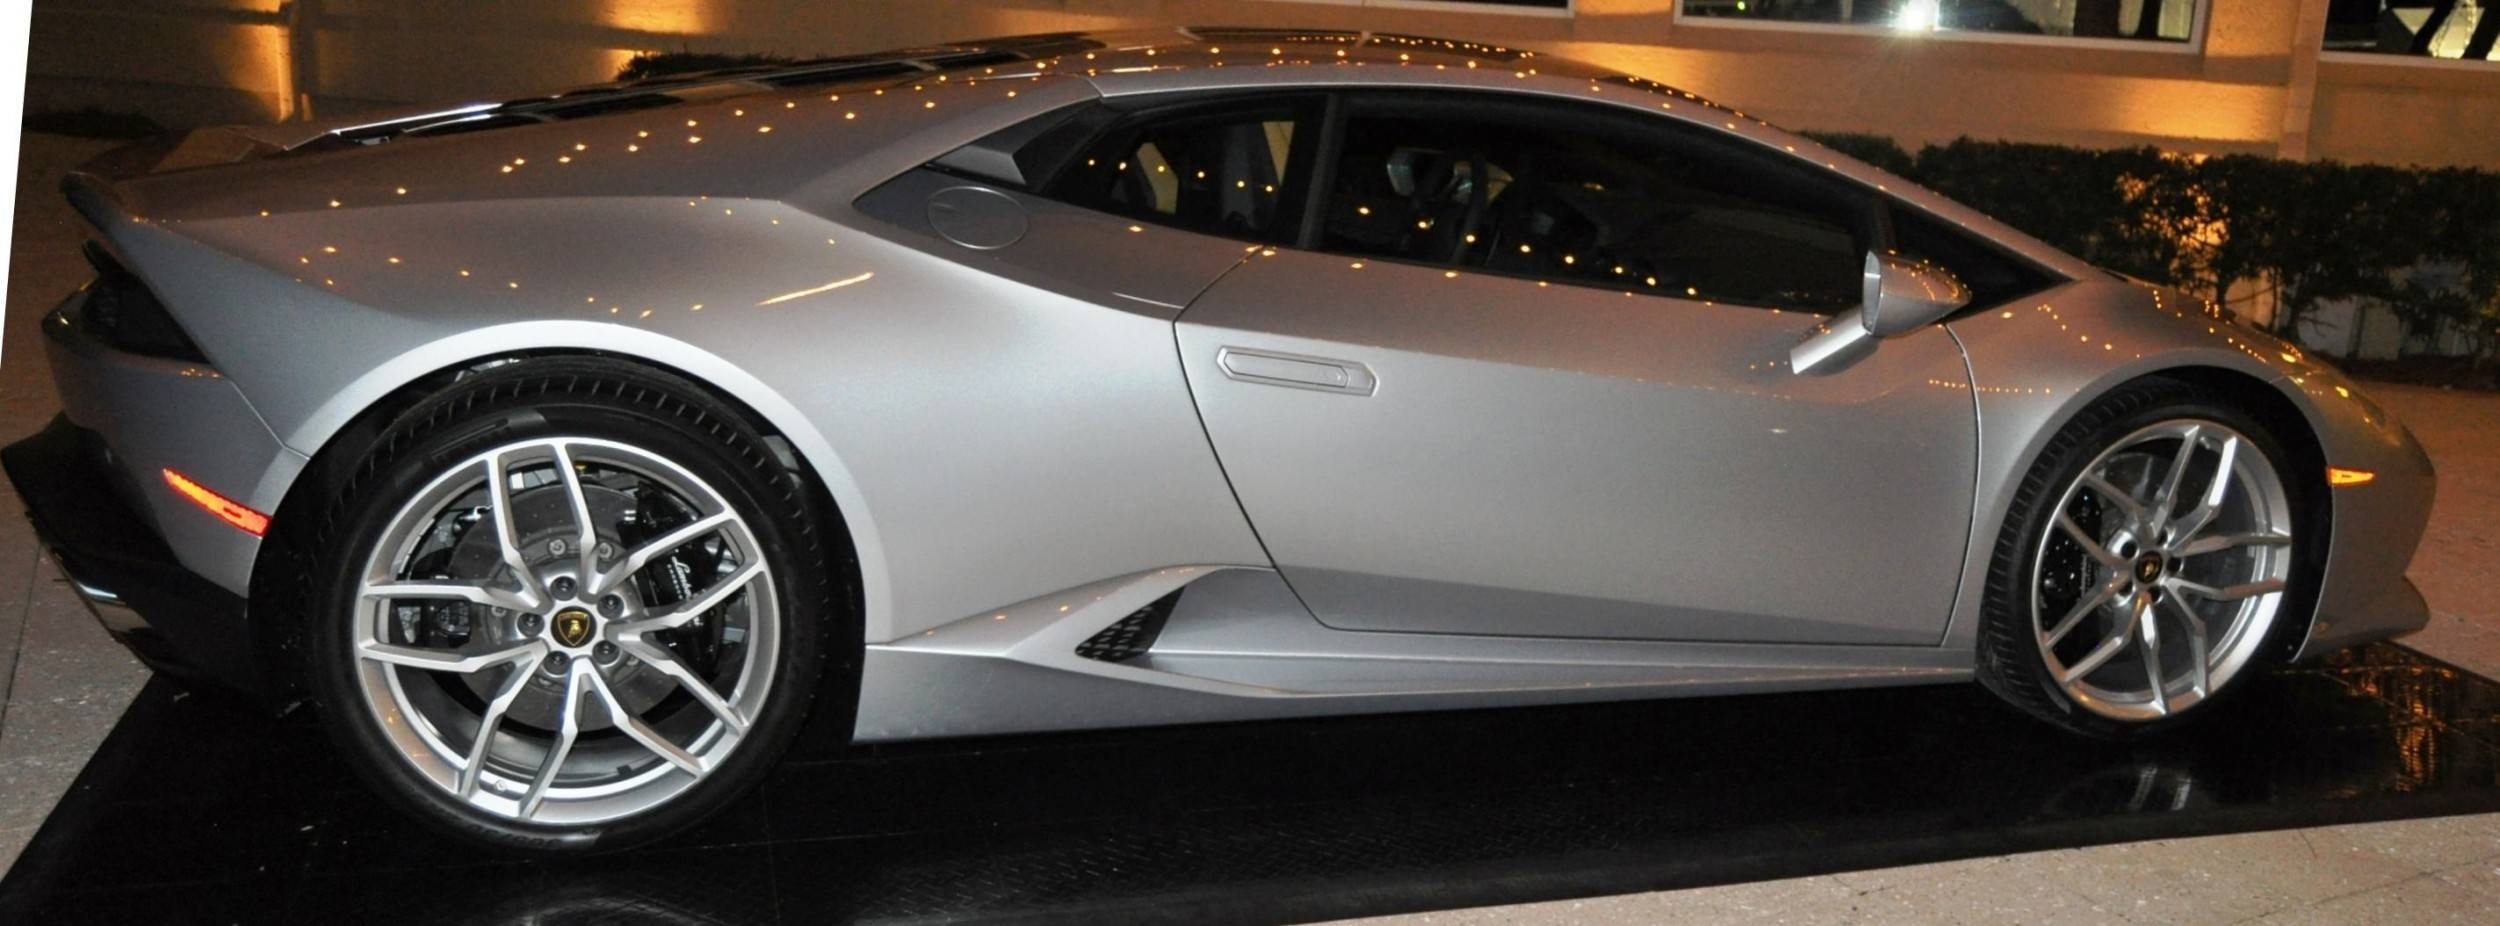 Car-Revs-Daily.com -- 2015 Lamborghini Huracan -- Official American Debut 93